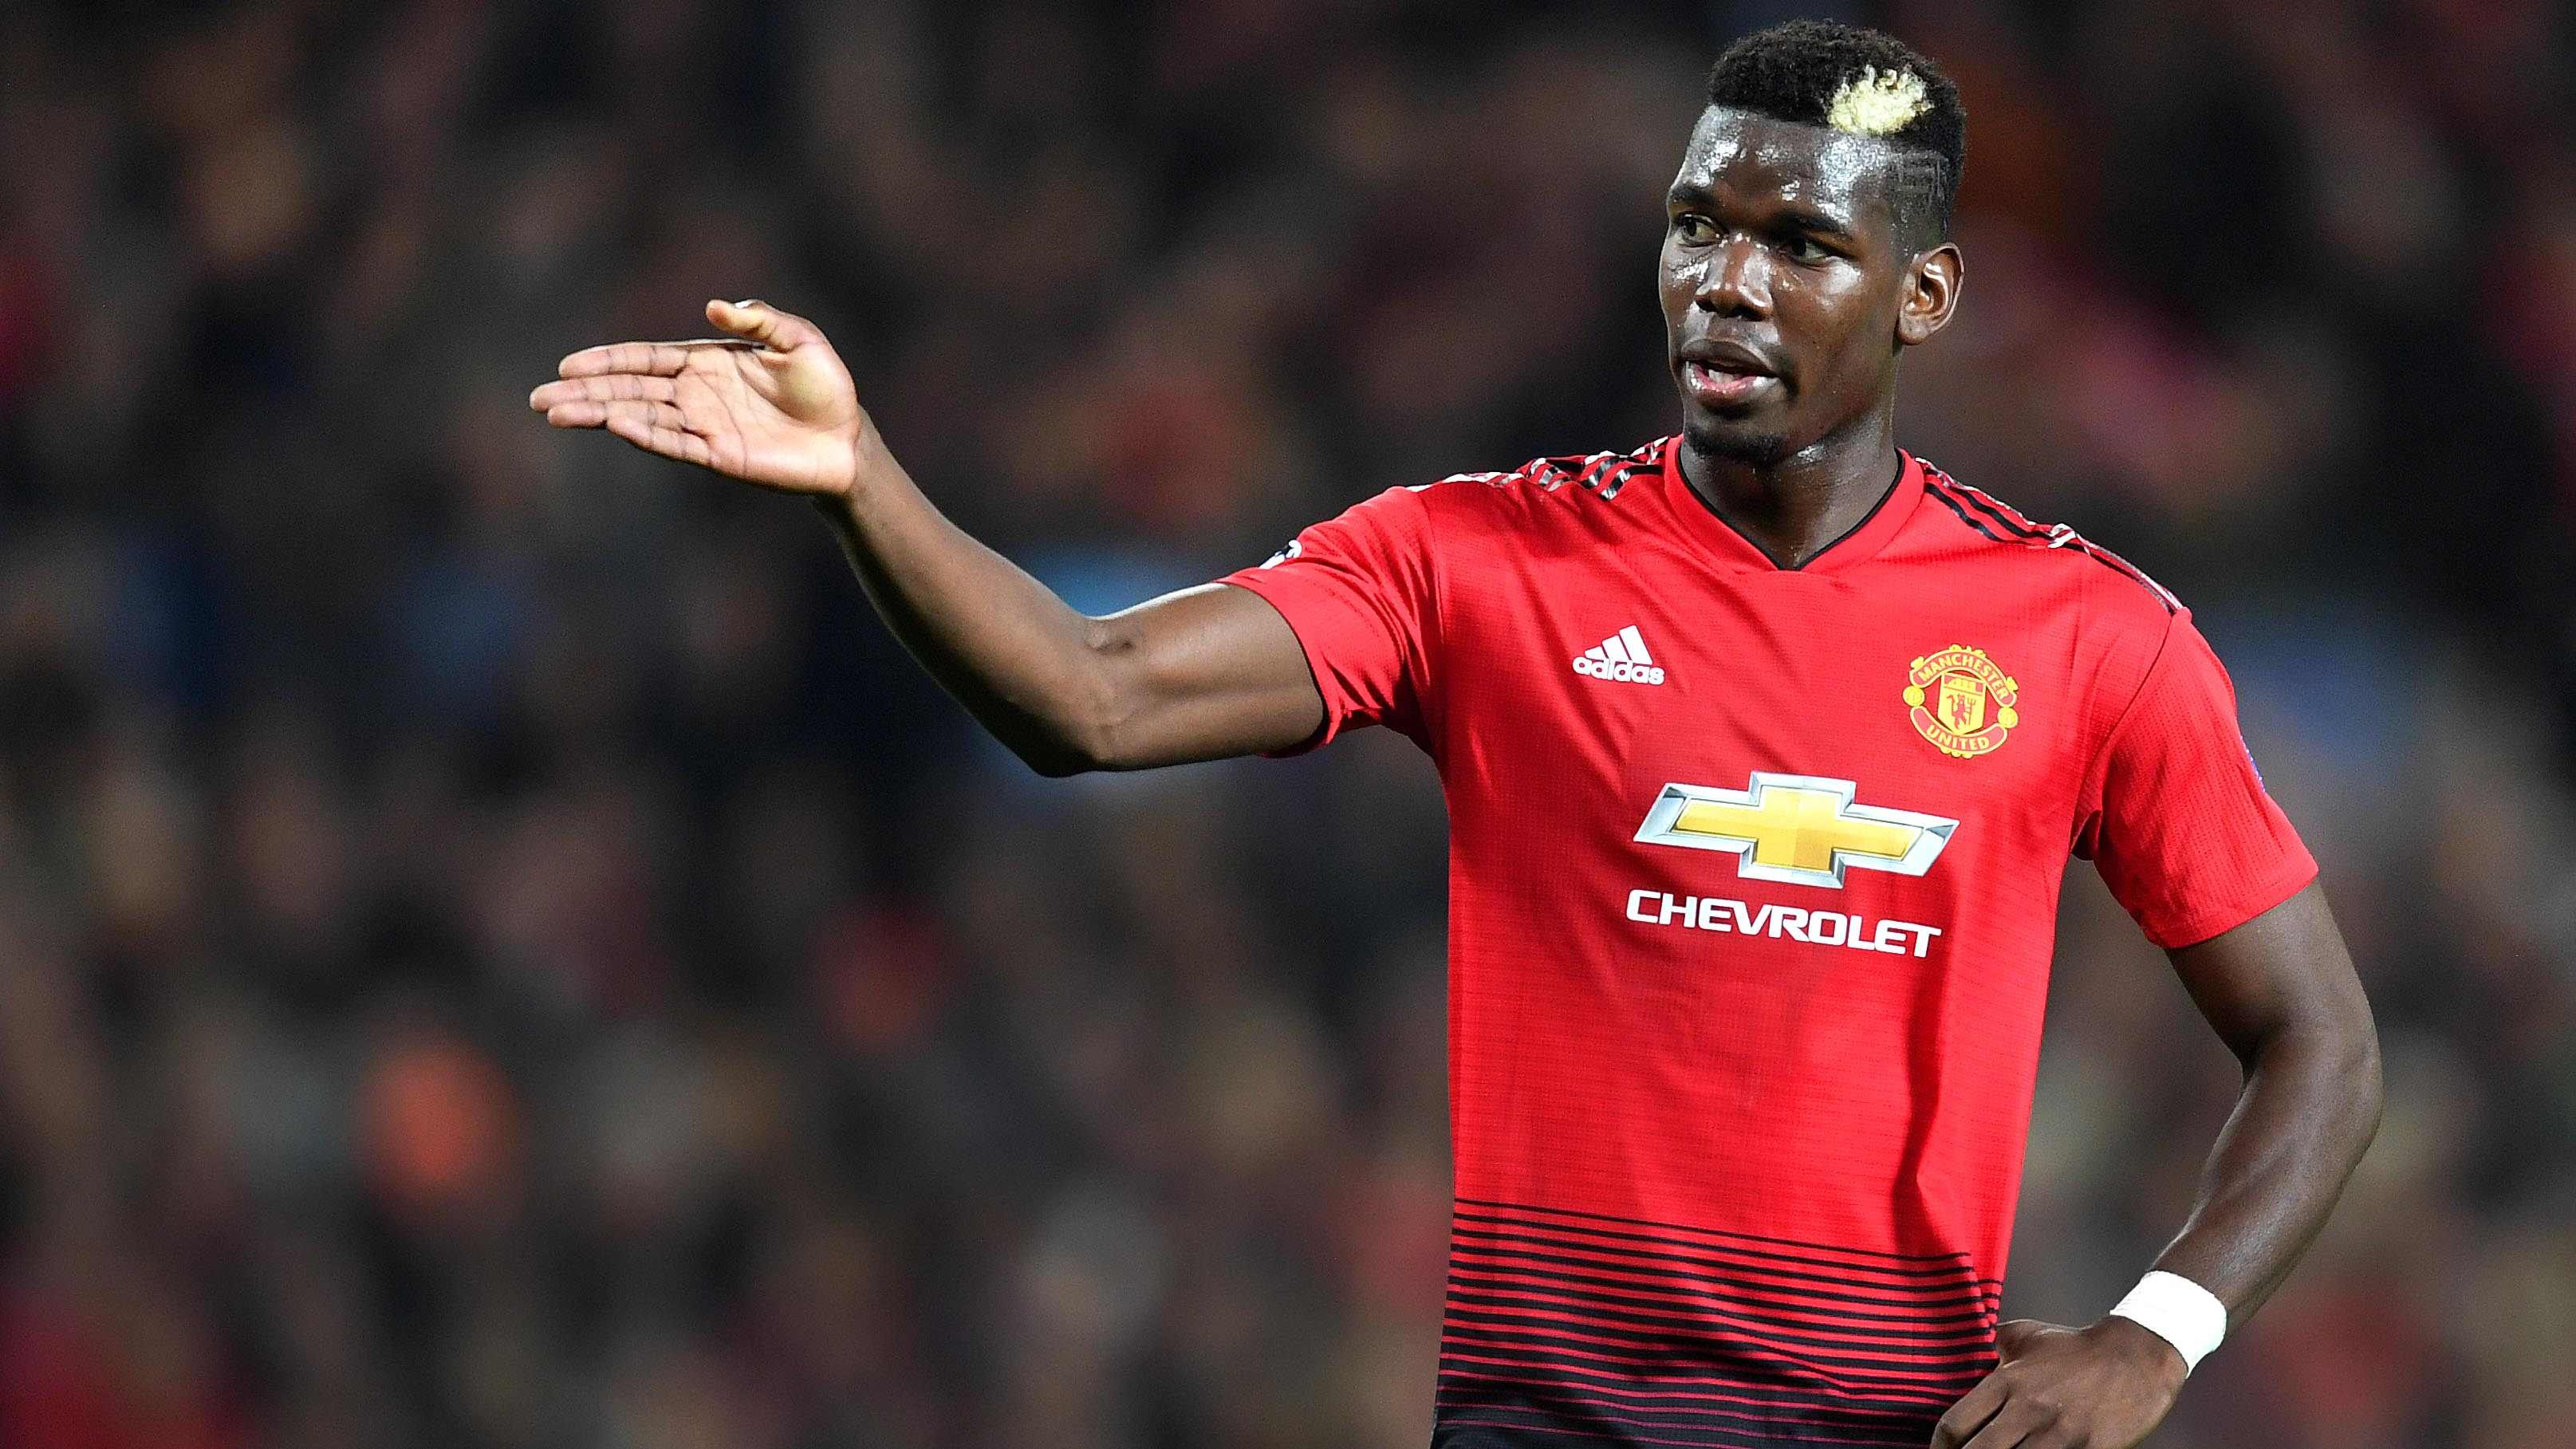 Paul Pogba hand on hip arm outstretched 1280.jpg